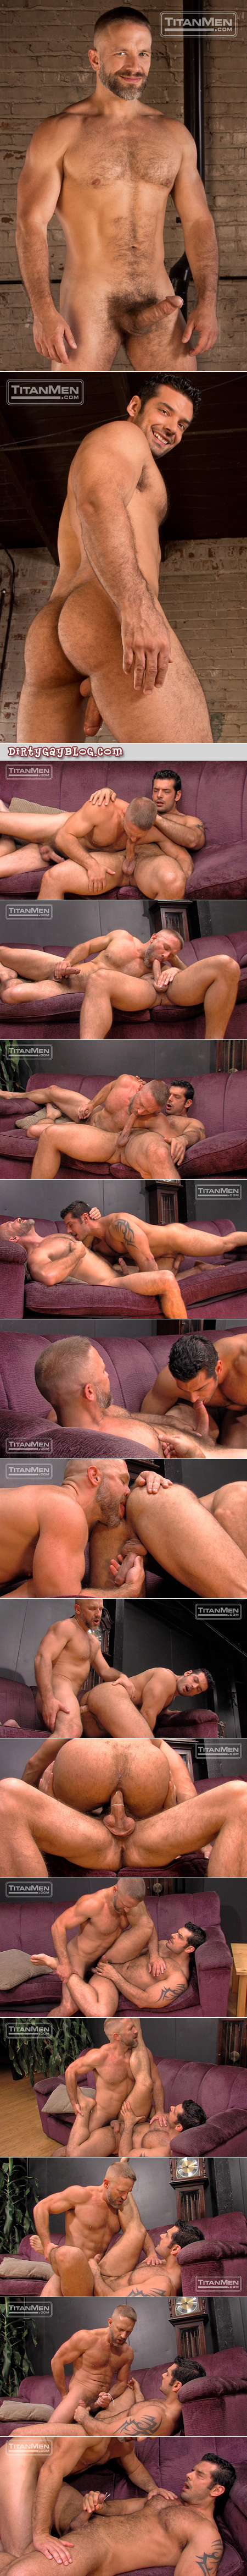 Extremely muscular, hairy Daddy fucks an uncut Latino bottom and shoots a huge load.